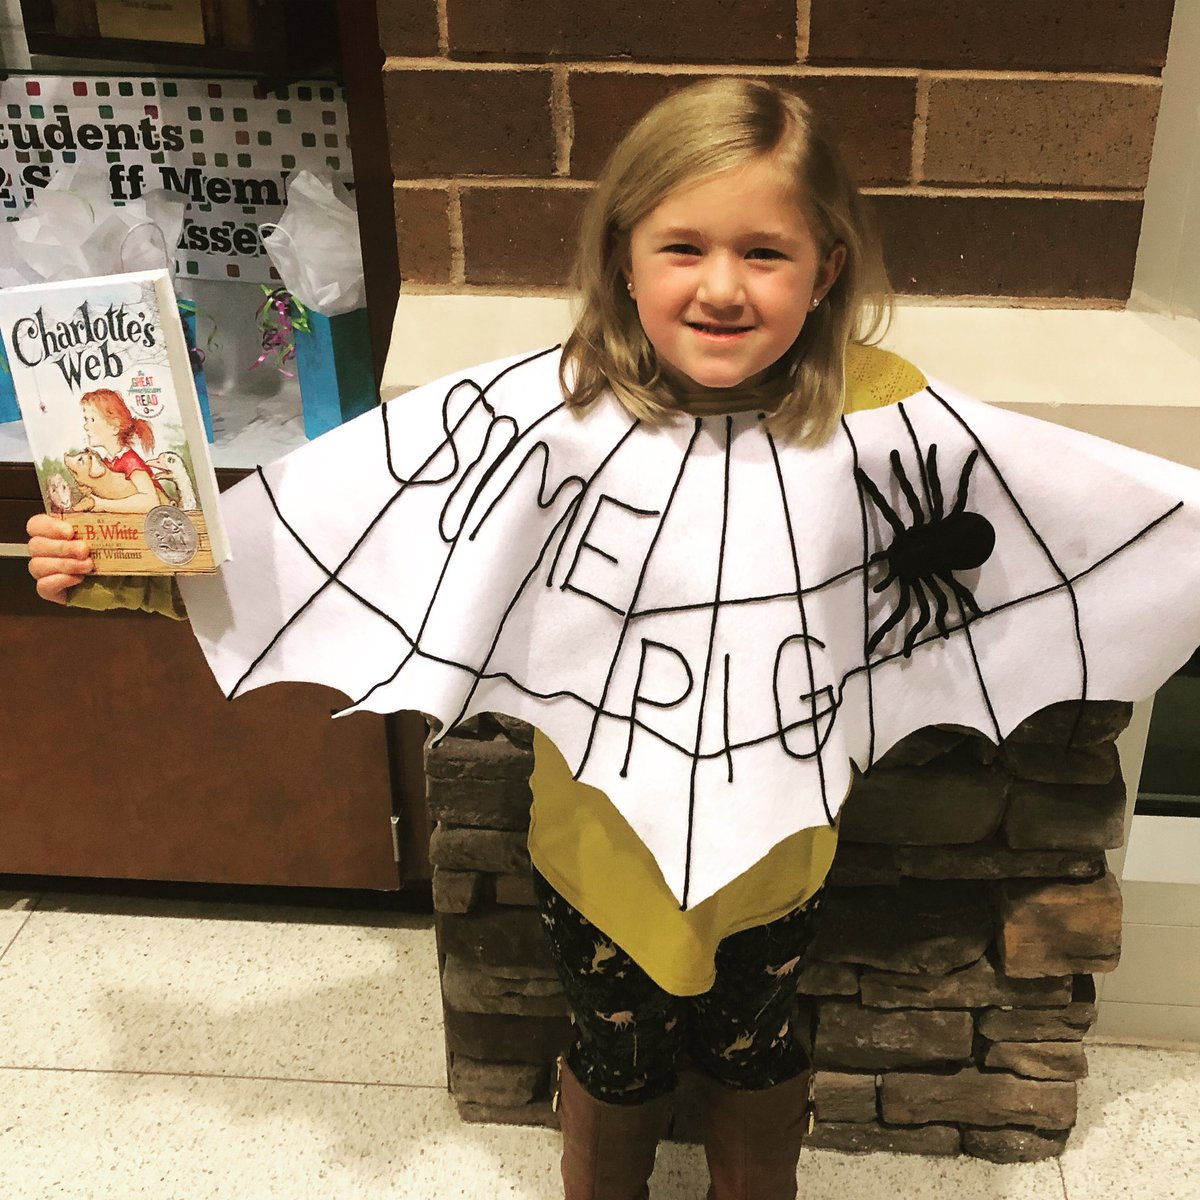 Storybook character day at Rocky Creek 🕷🕸🐷 #CharlottesWeb #storybooks #OneRCE #Somepig https://t.co/0k3UNmw6oJ